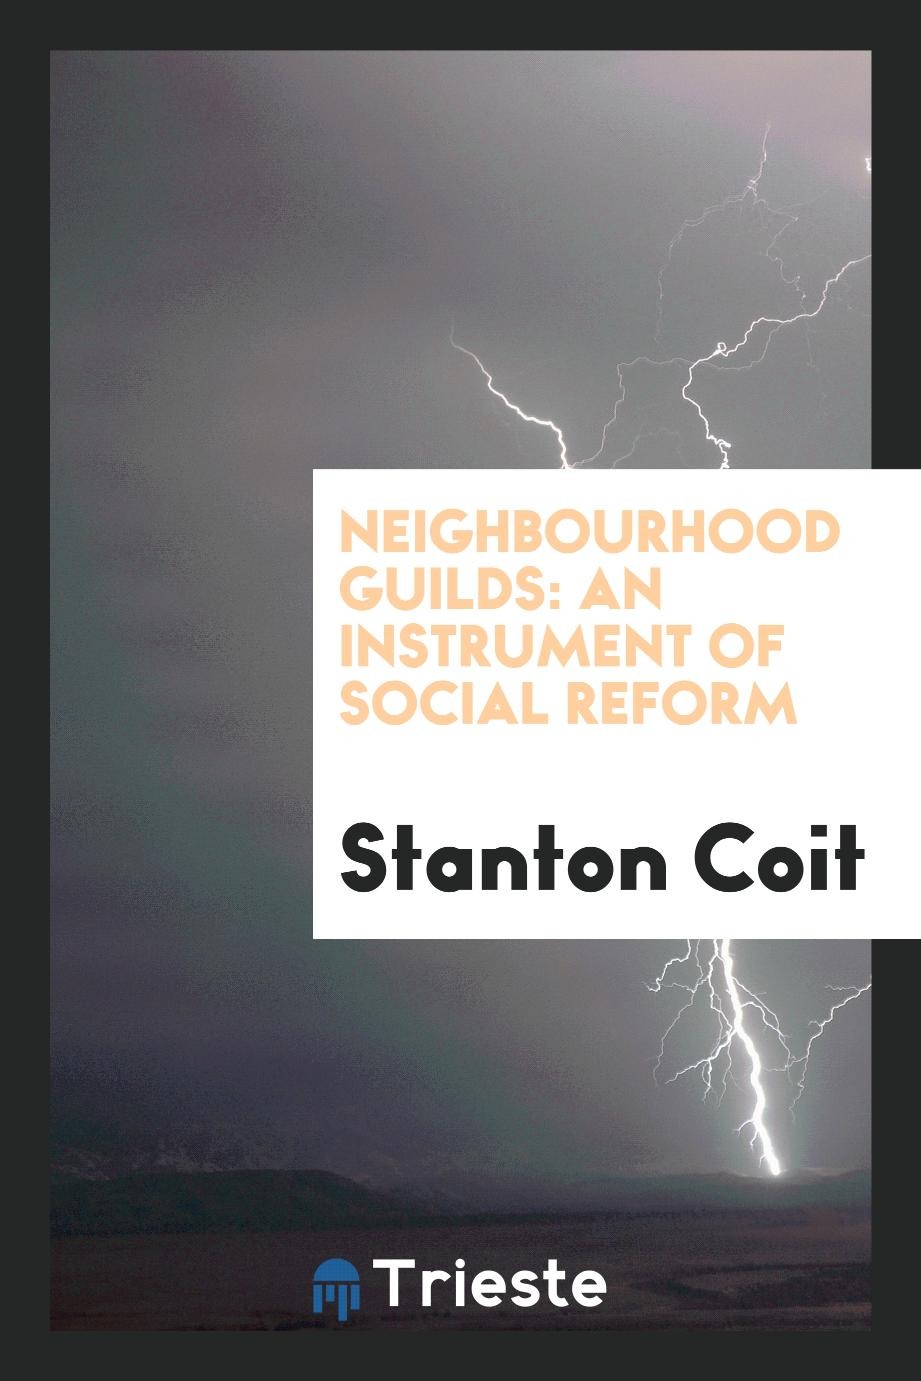 Stanton Coit - Neighbourhood Guilds: An Instrument of Social Reform